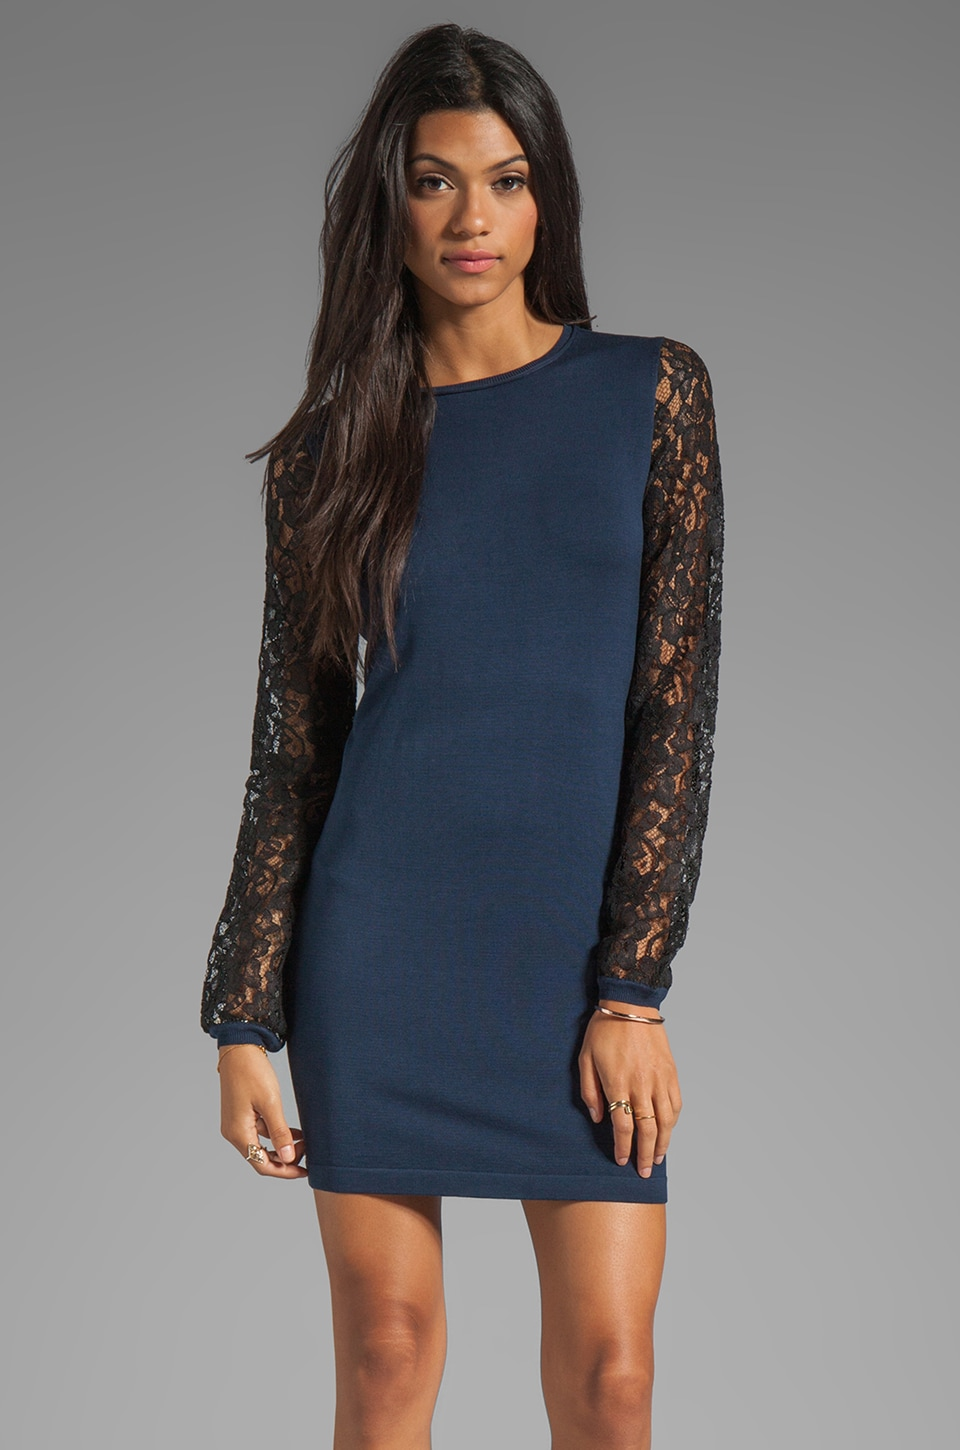 Diane von Furstenberg Kivel Lace Dress in Marine Blue/Black